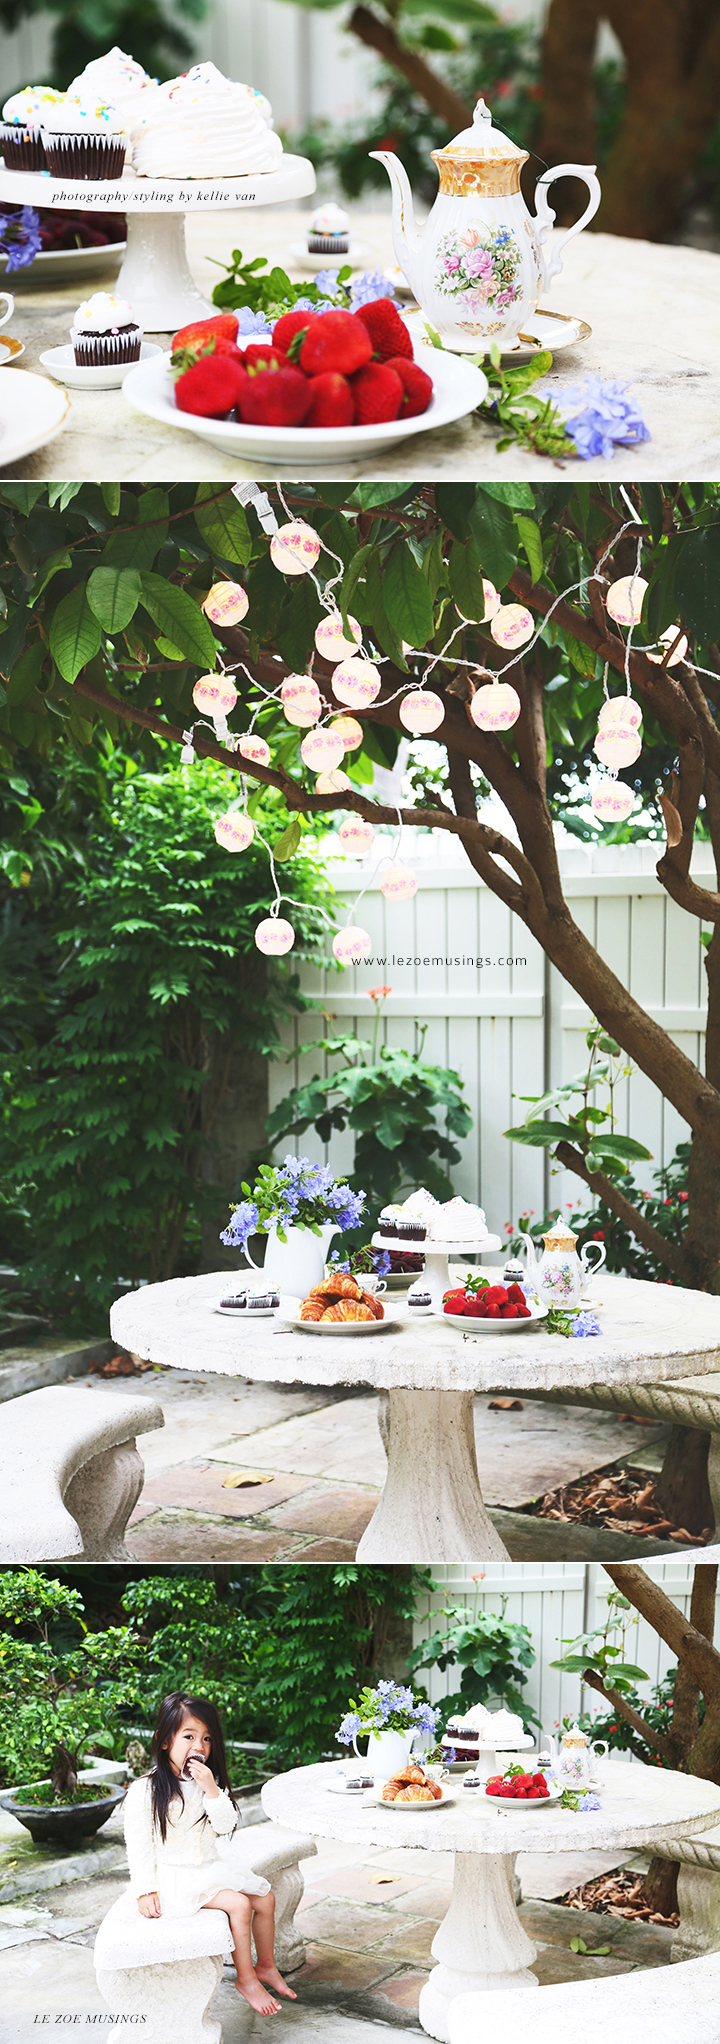 TEA FOR TWO BY LE ZOE MUSINGS2